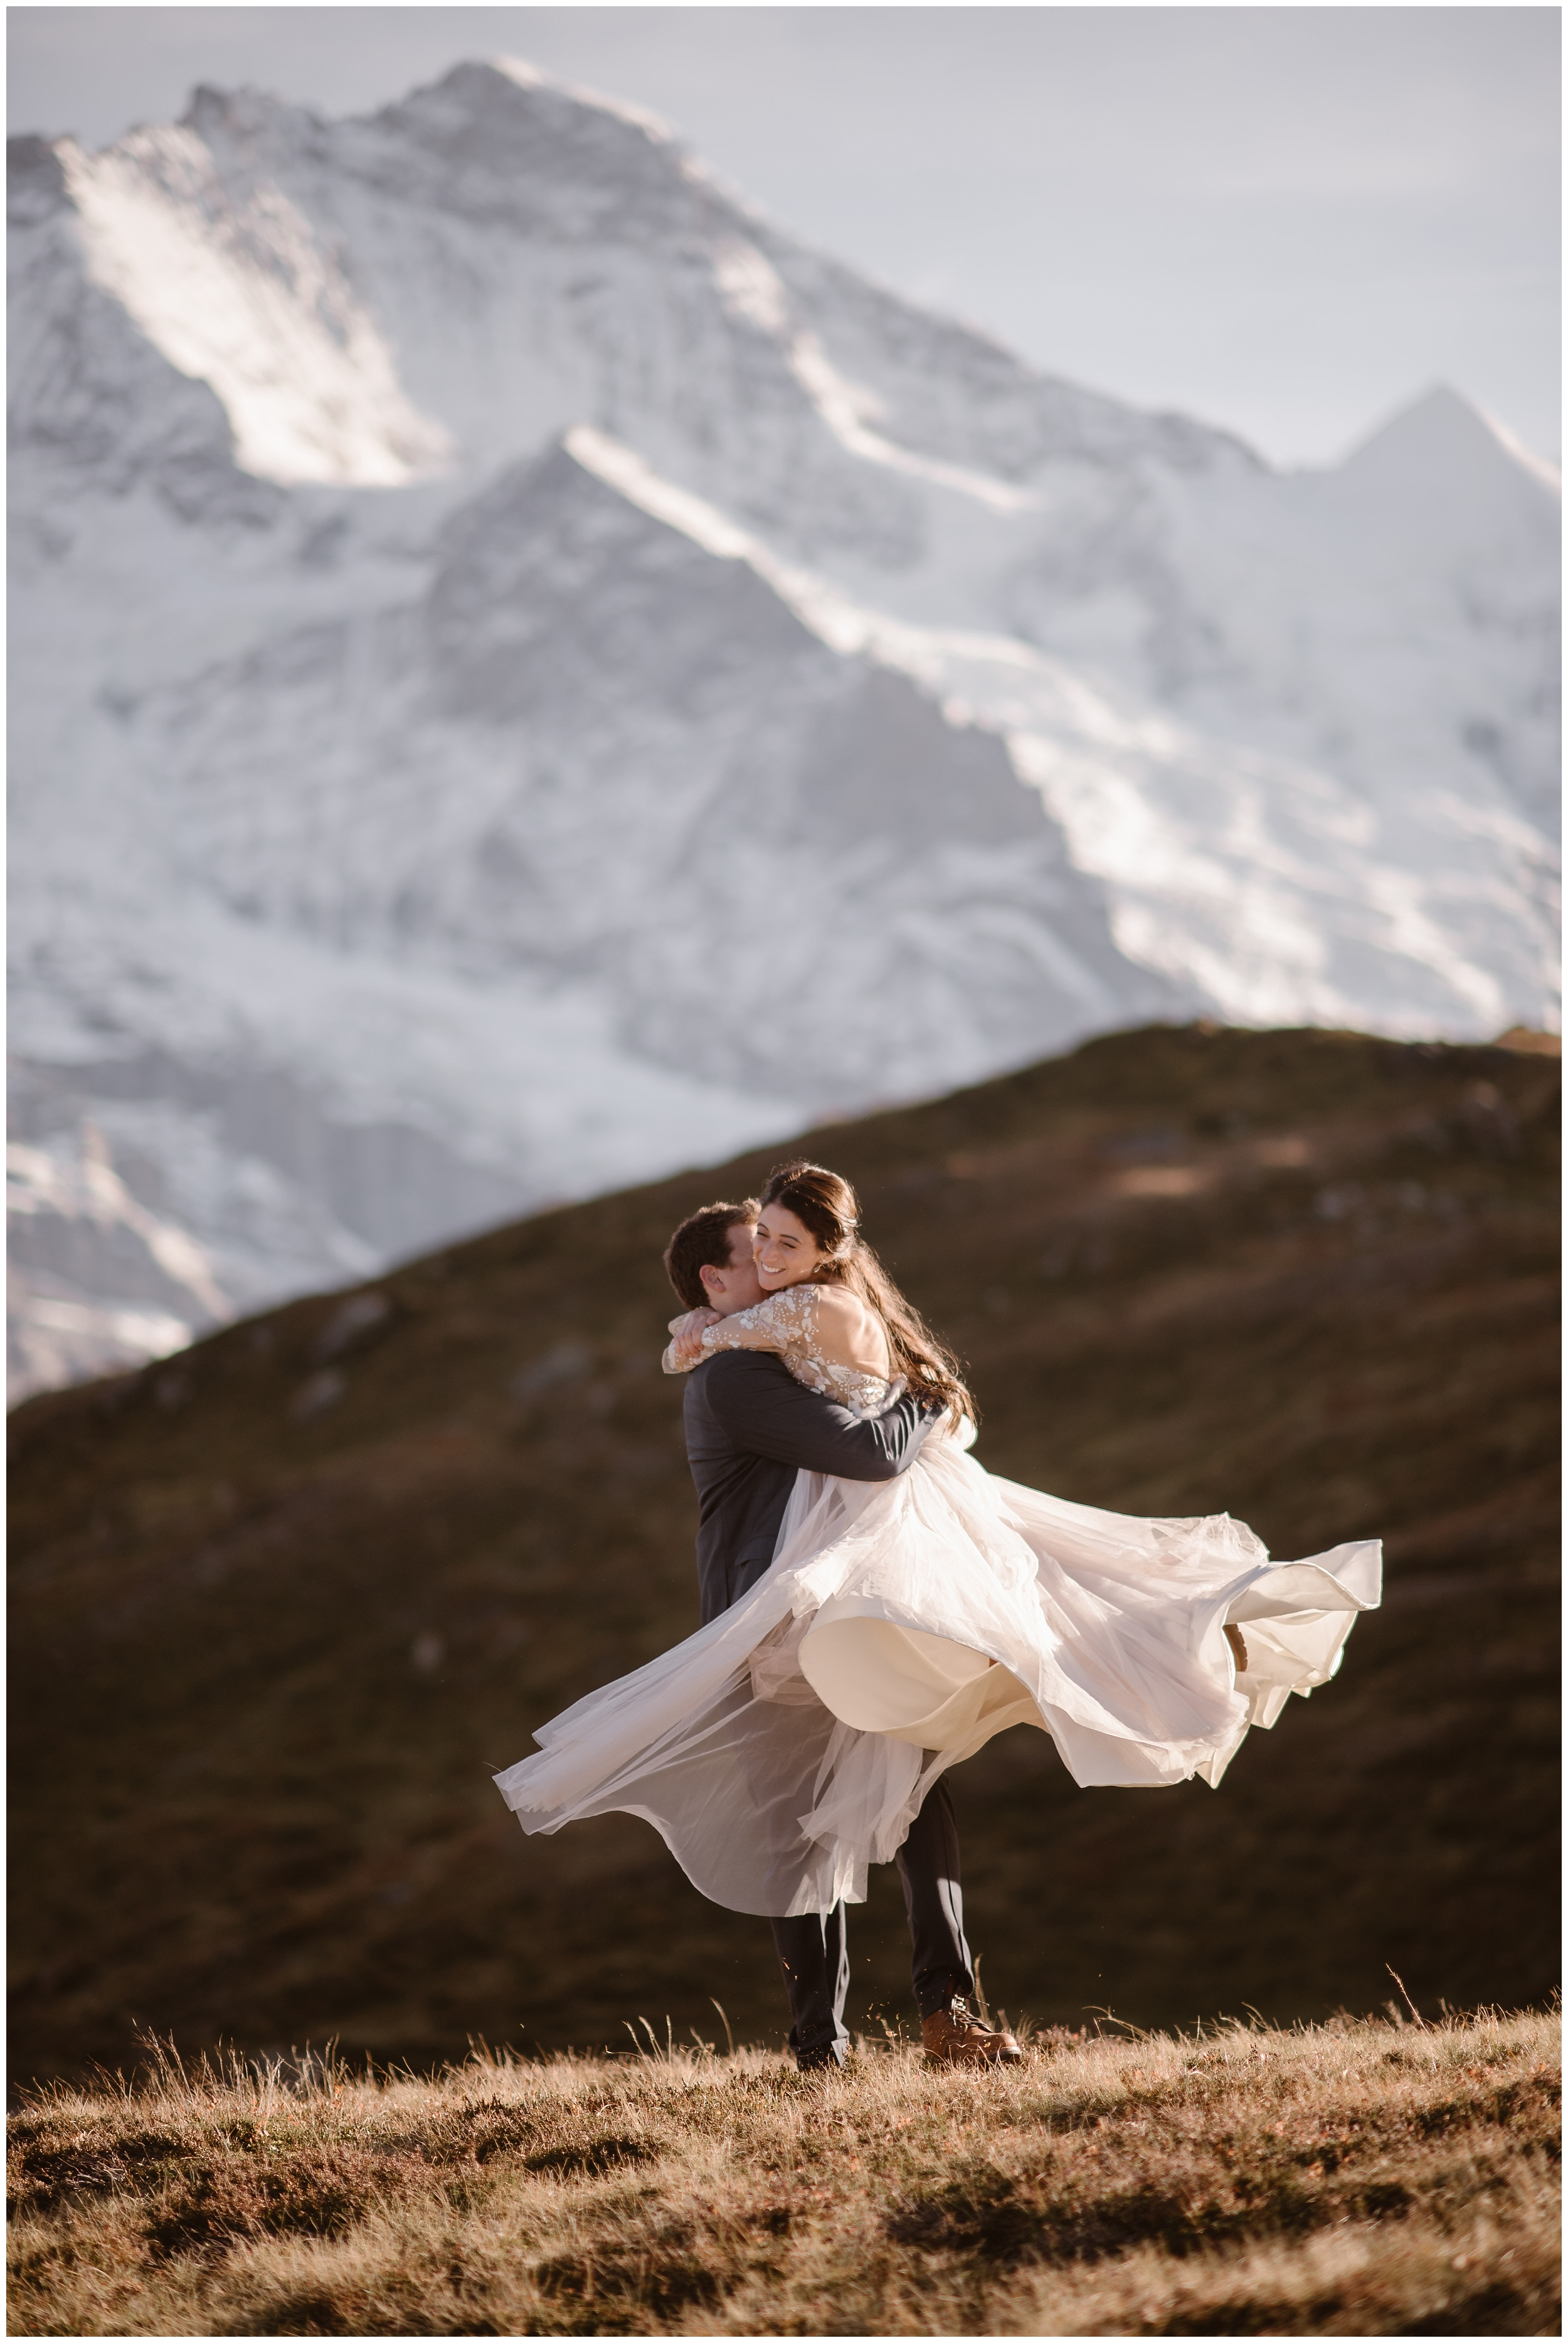 A bride and groom spin around outside on their wedding day in Switzerland in a photo captured by adventure elopement photographer Adventure Instead. Behind them, giant, snow-capped mountains can be seen.